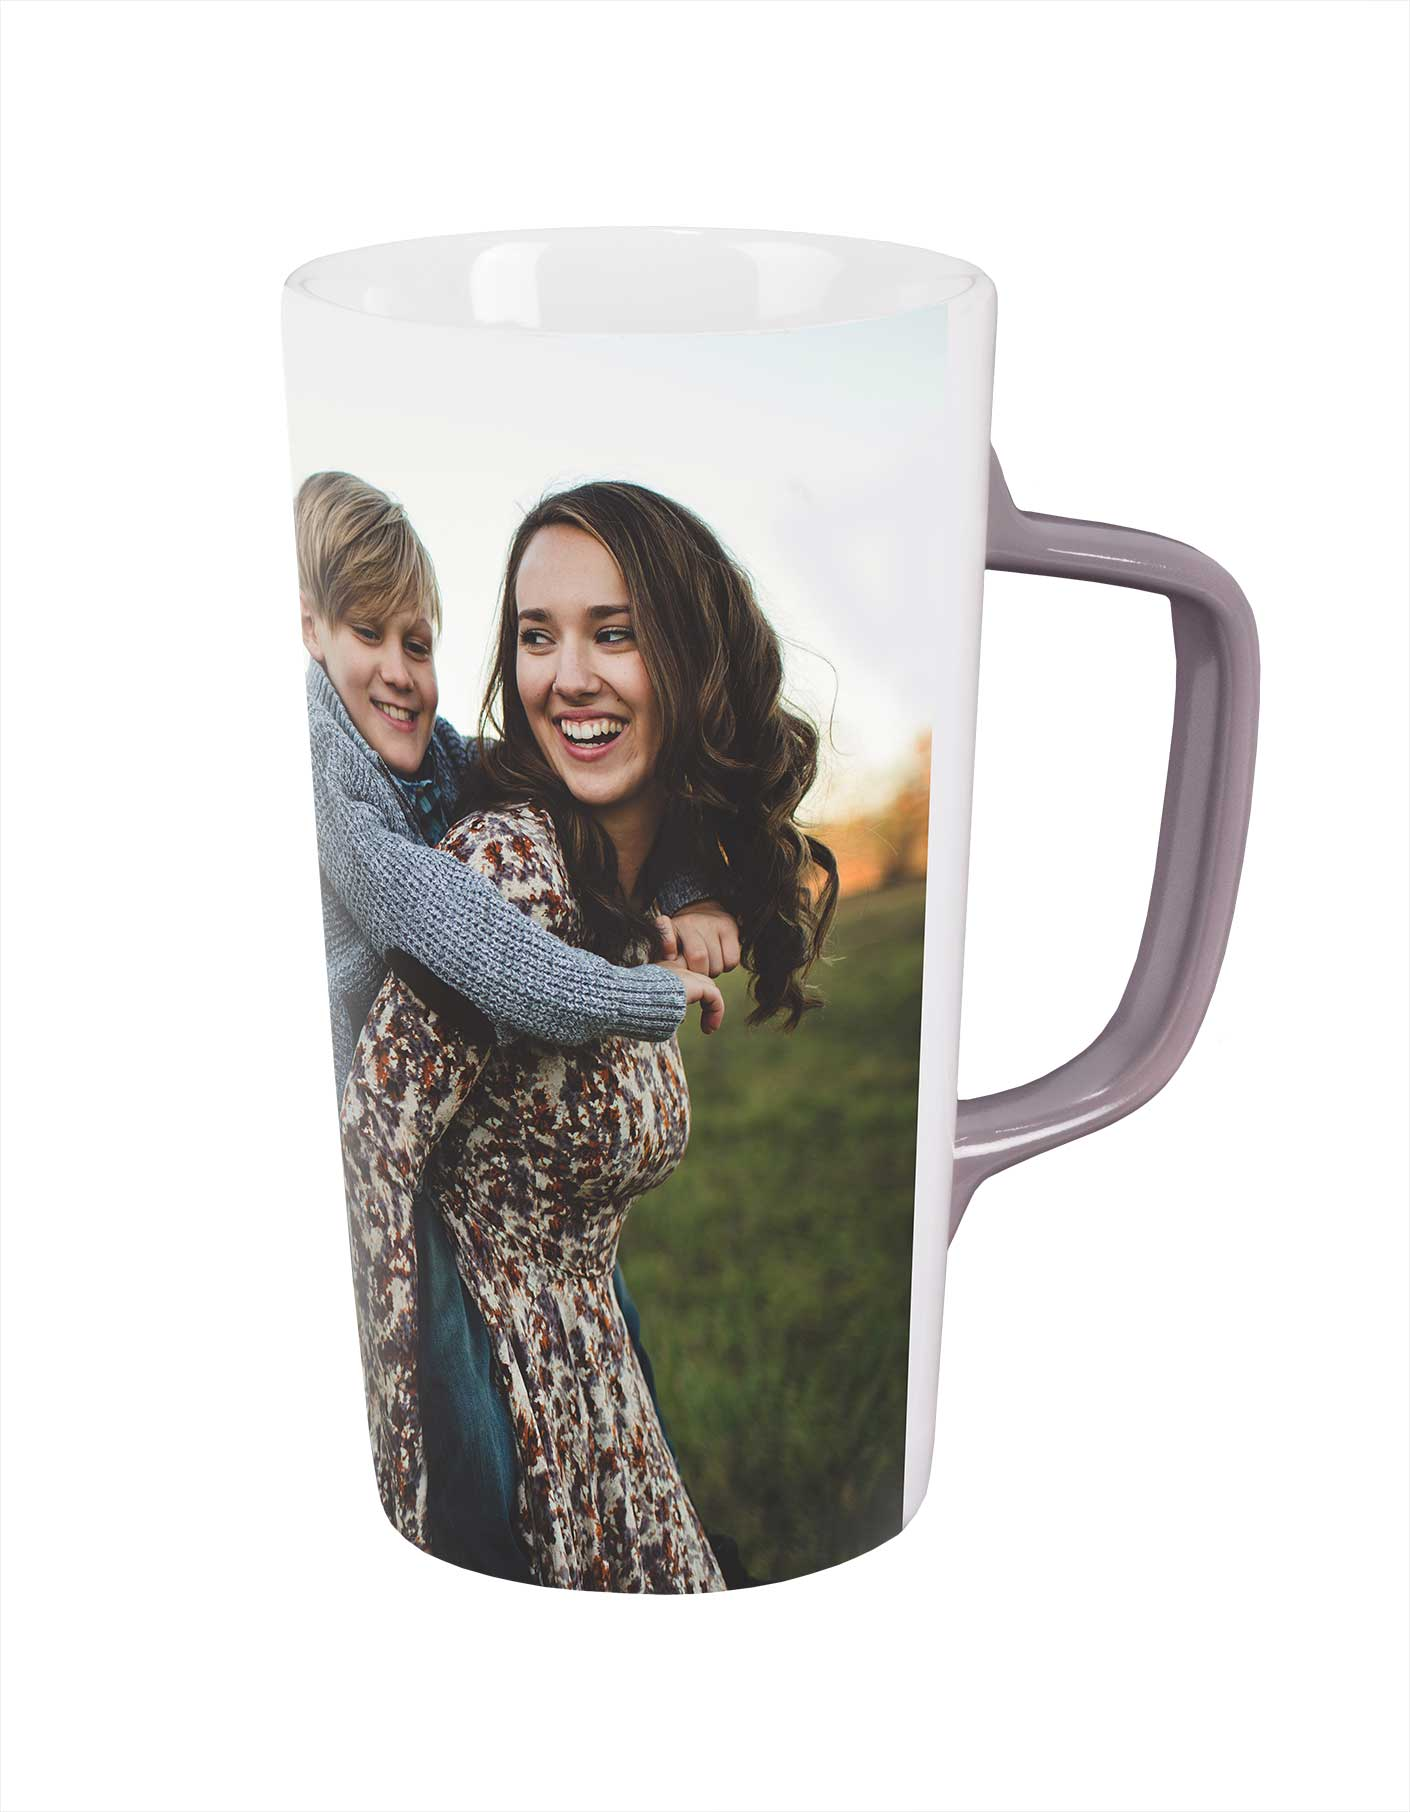 Personalized Ceramic Coffee Mugs